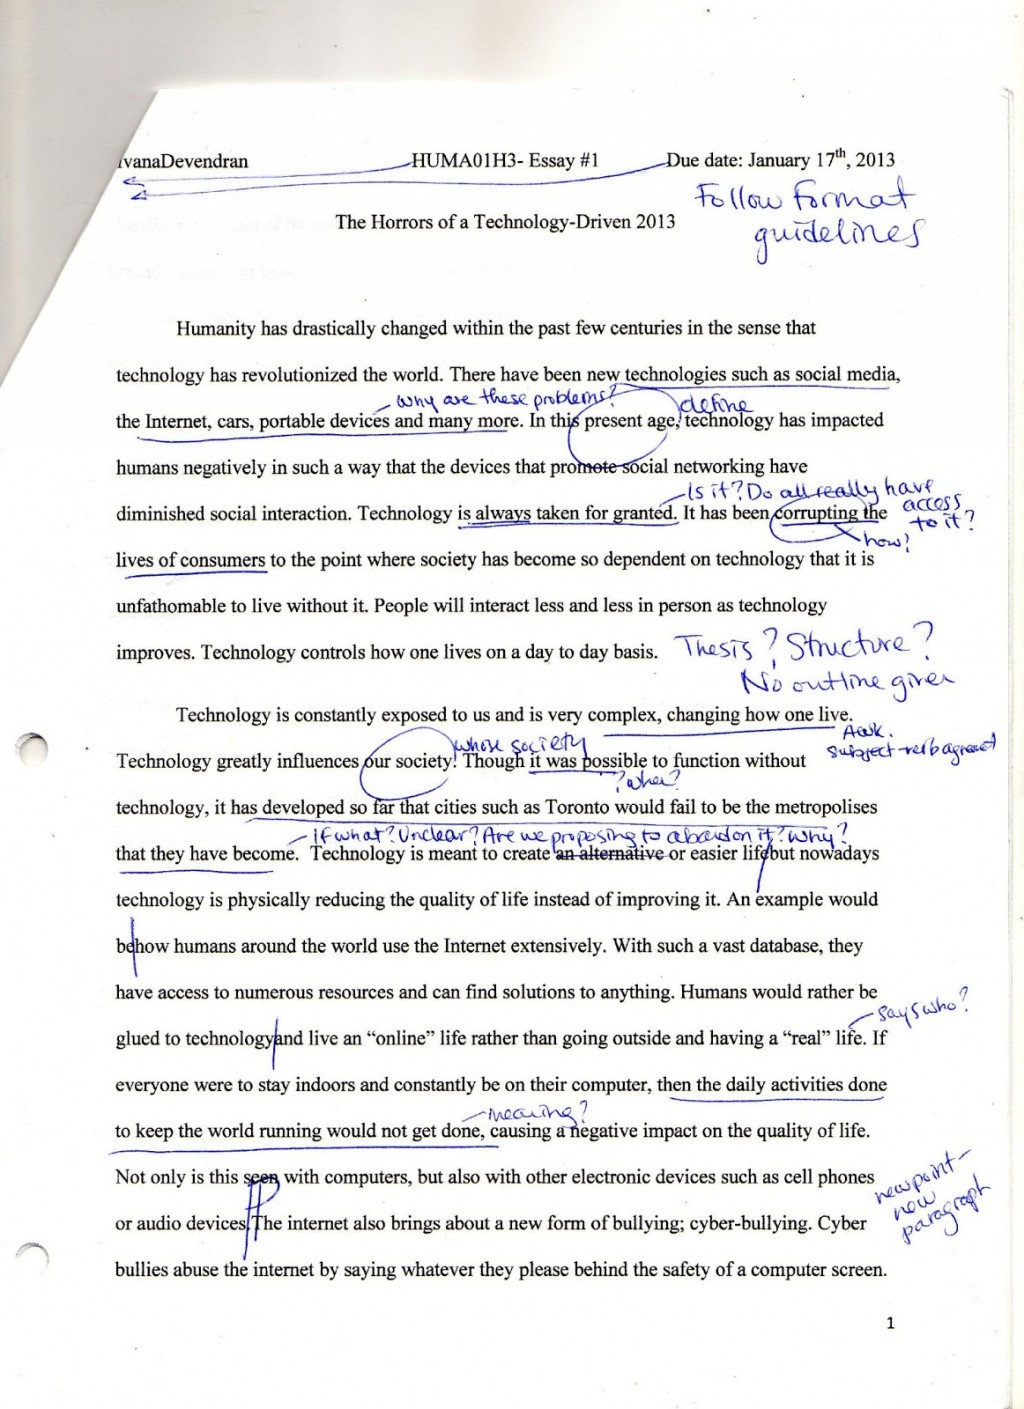 003 Deforestation Essay Animal Cruelty Persuasive Humanities Essays I Phenomenal Topics In Hindi Pdf Large